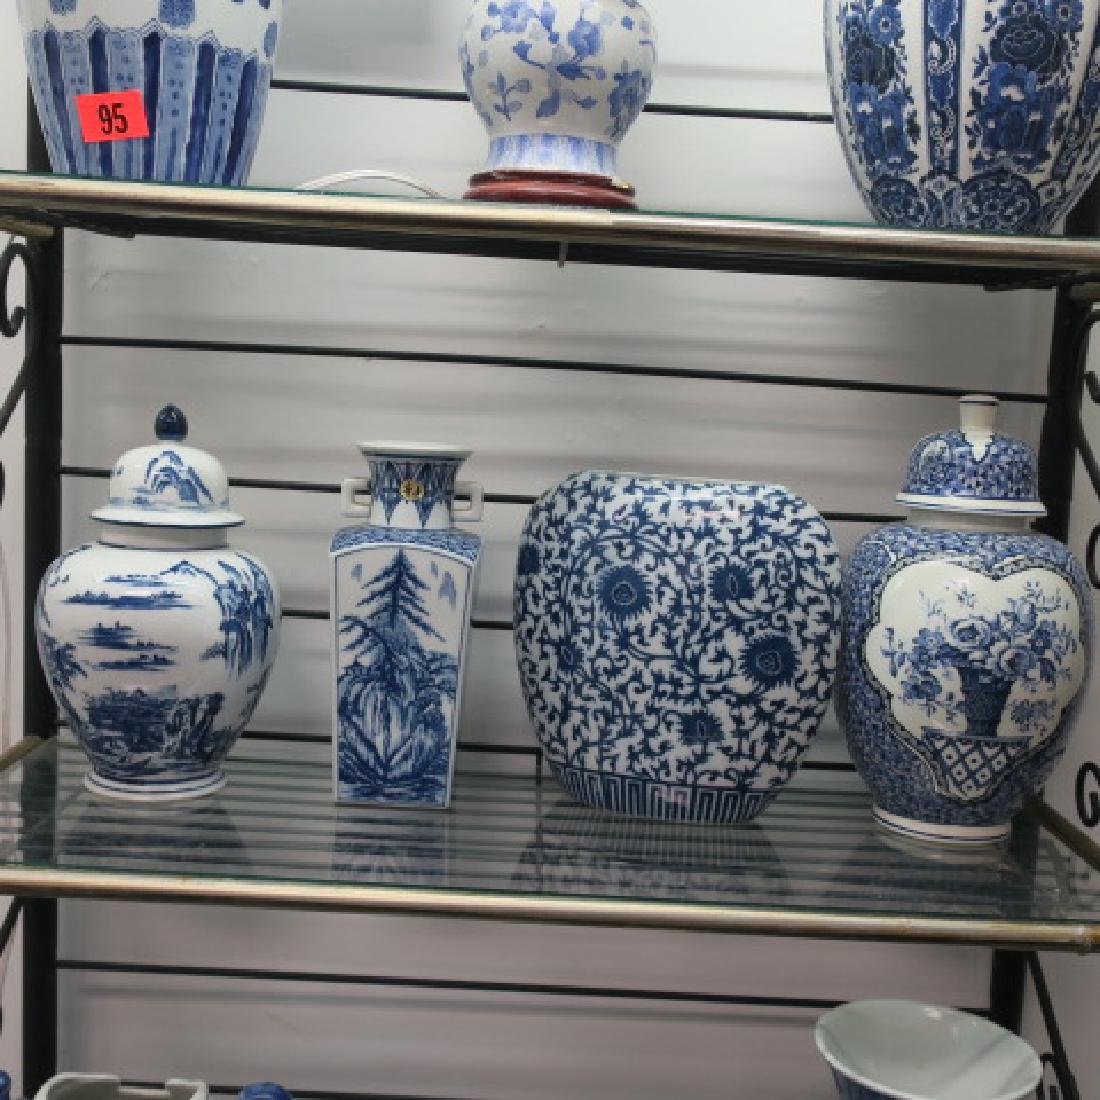 Four Blue and White Ceramic Vases and Jars: